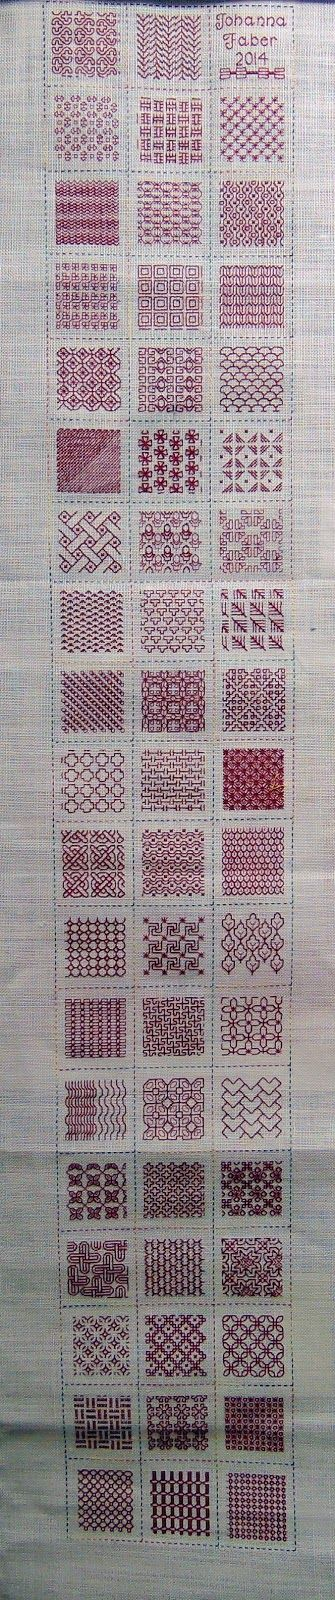 Example of Blackwork, so called because it was usually done using black thread and generally in geometric patterns. So beautiful!